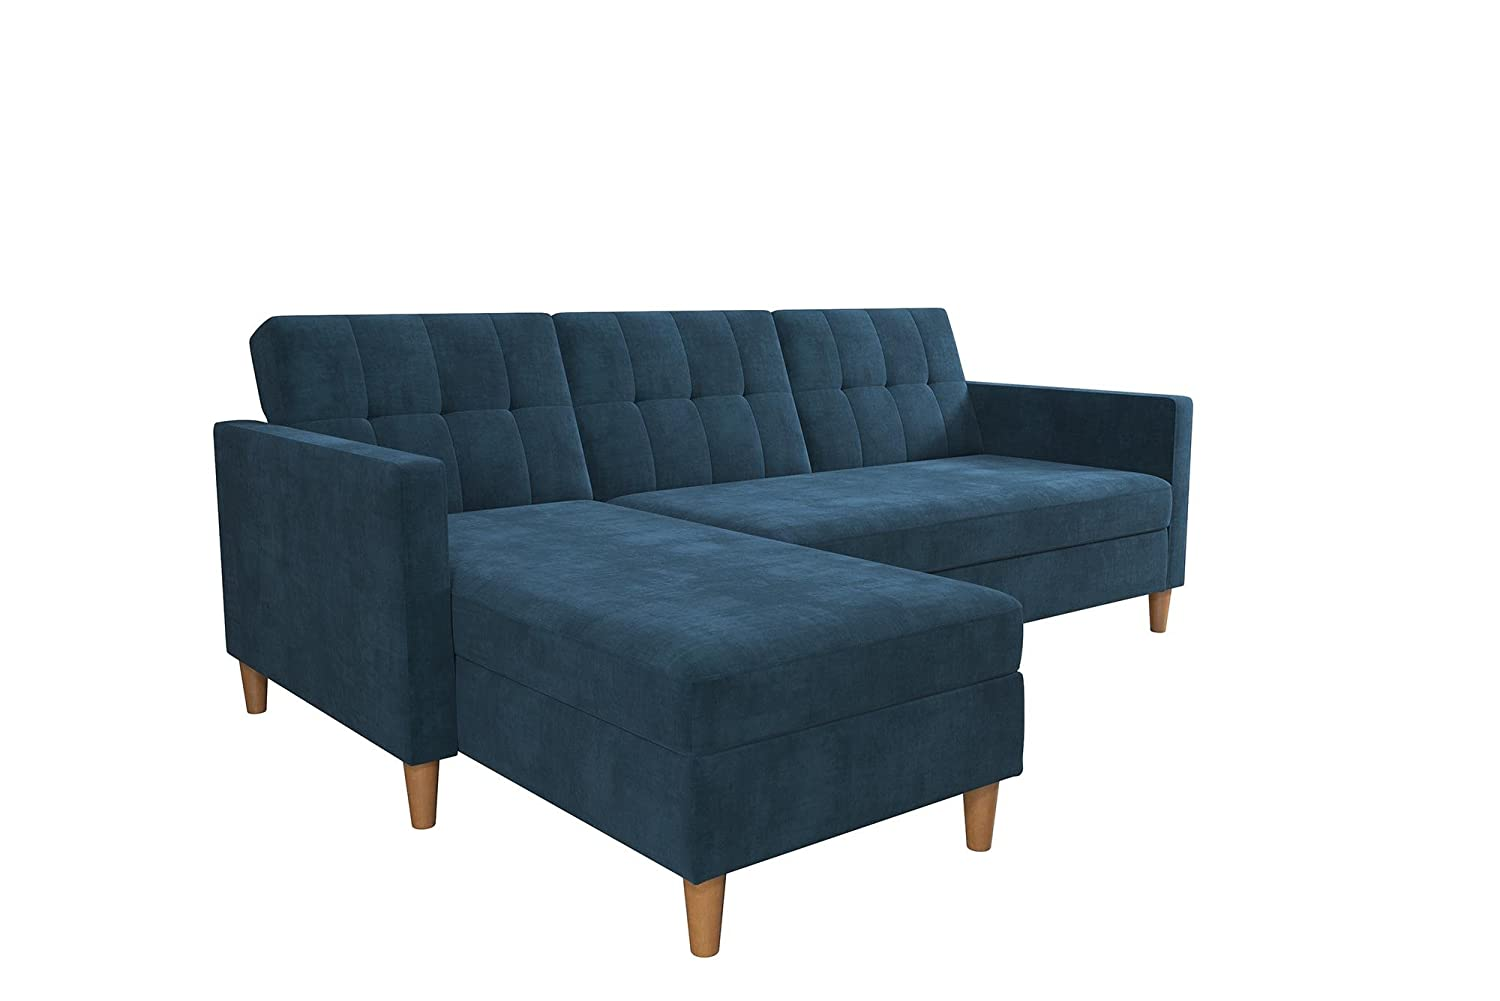 Superb Dhp Hartford Storage Sectional Futon With Interchangeable Chaise And Storage Ottoman Blue Chenille Lamtechconsult Wood Chair Design Ideas Lamtechconsultcom